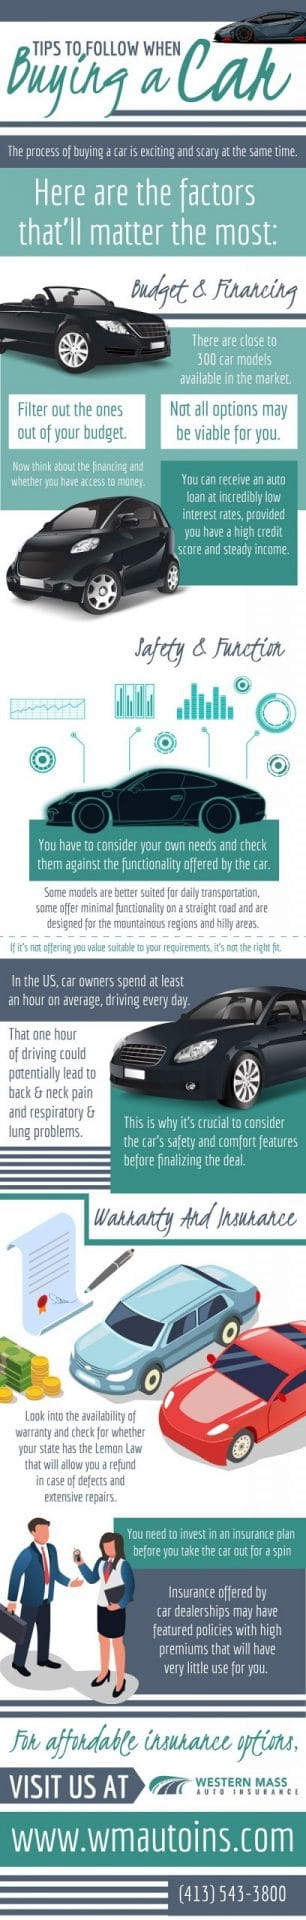 Tips to buy a car